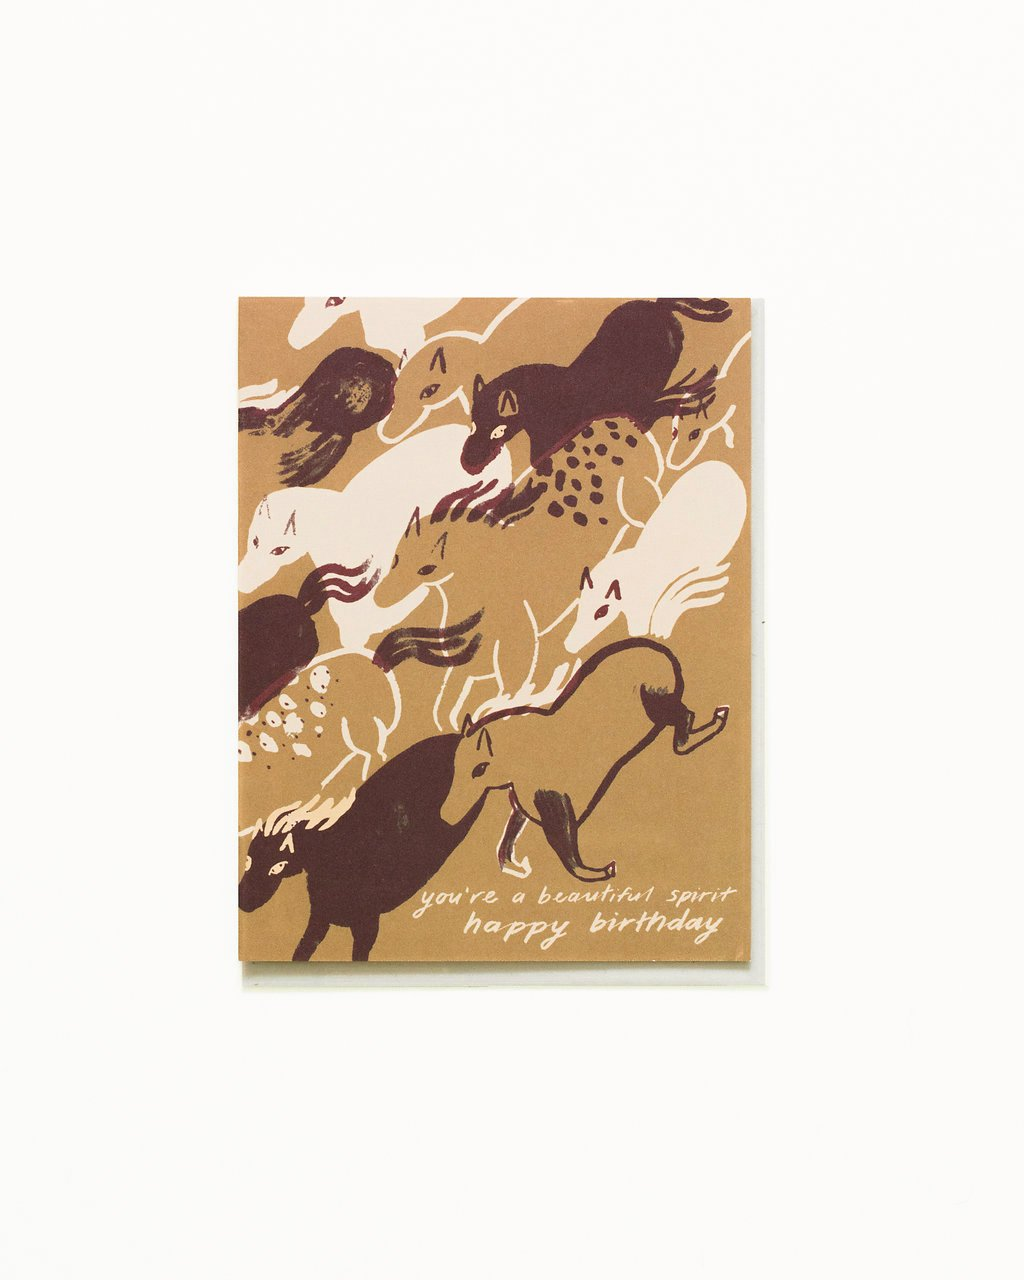 spirit birthday card